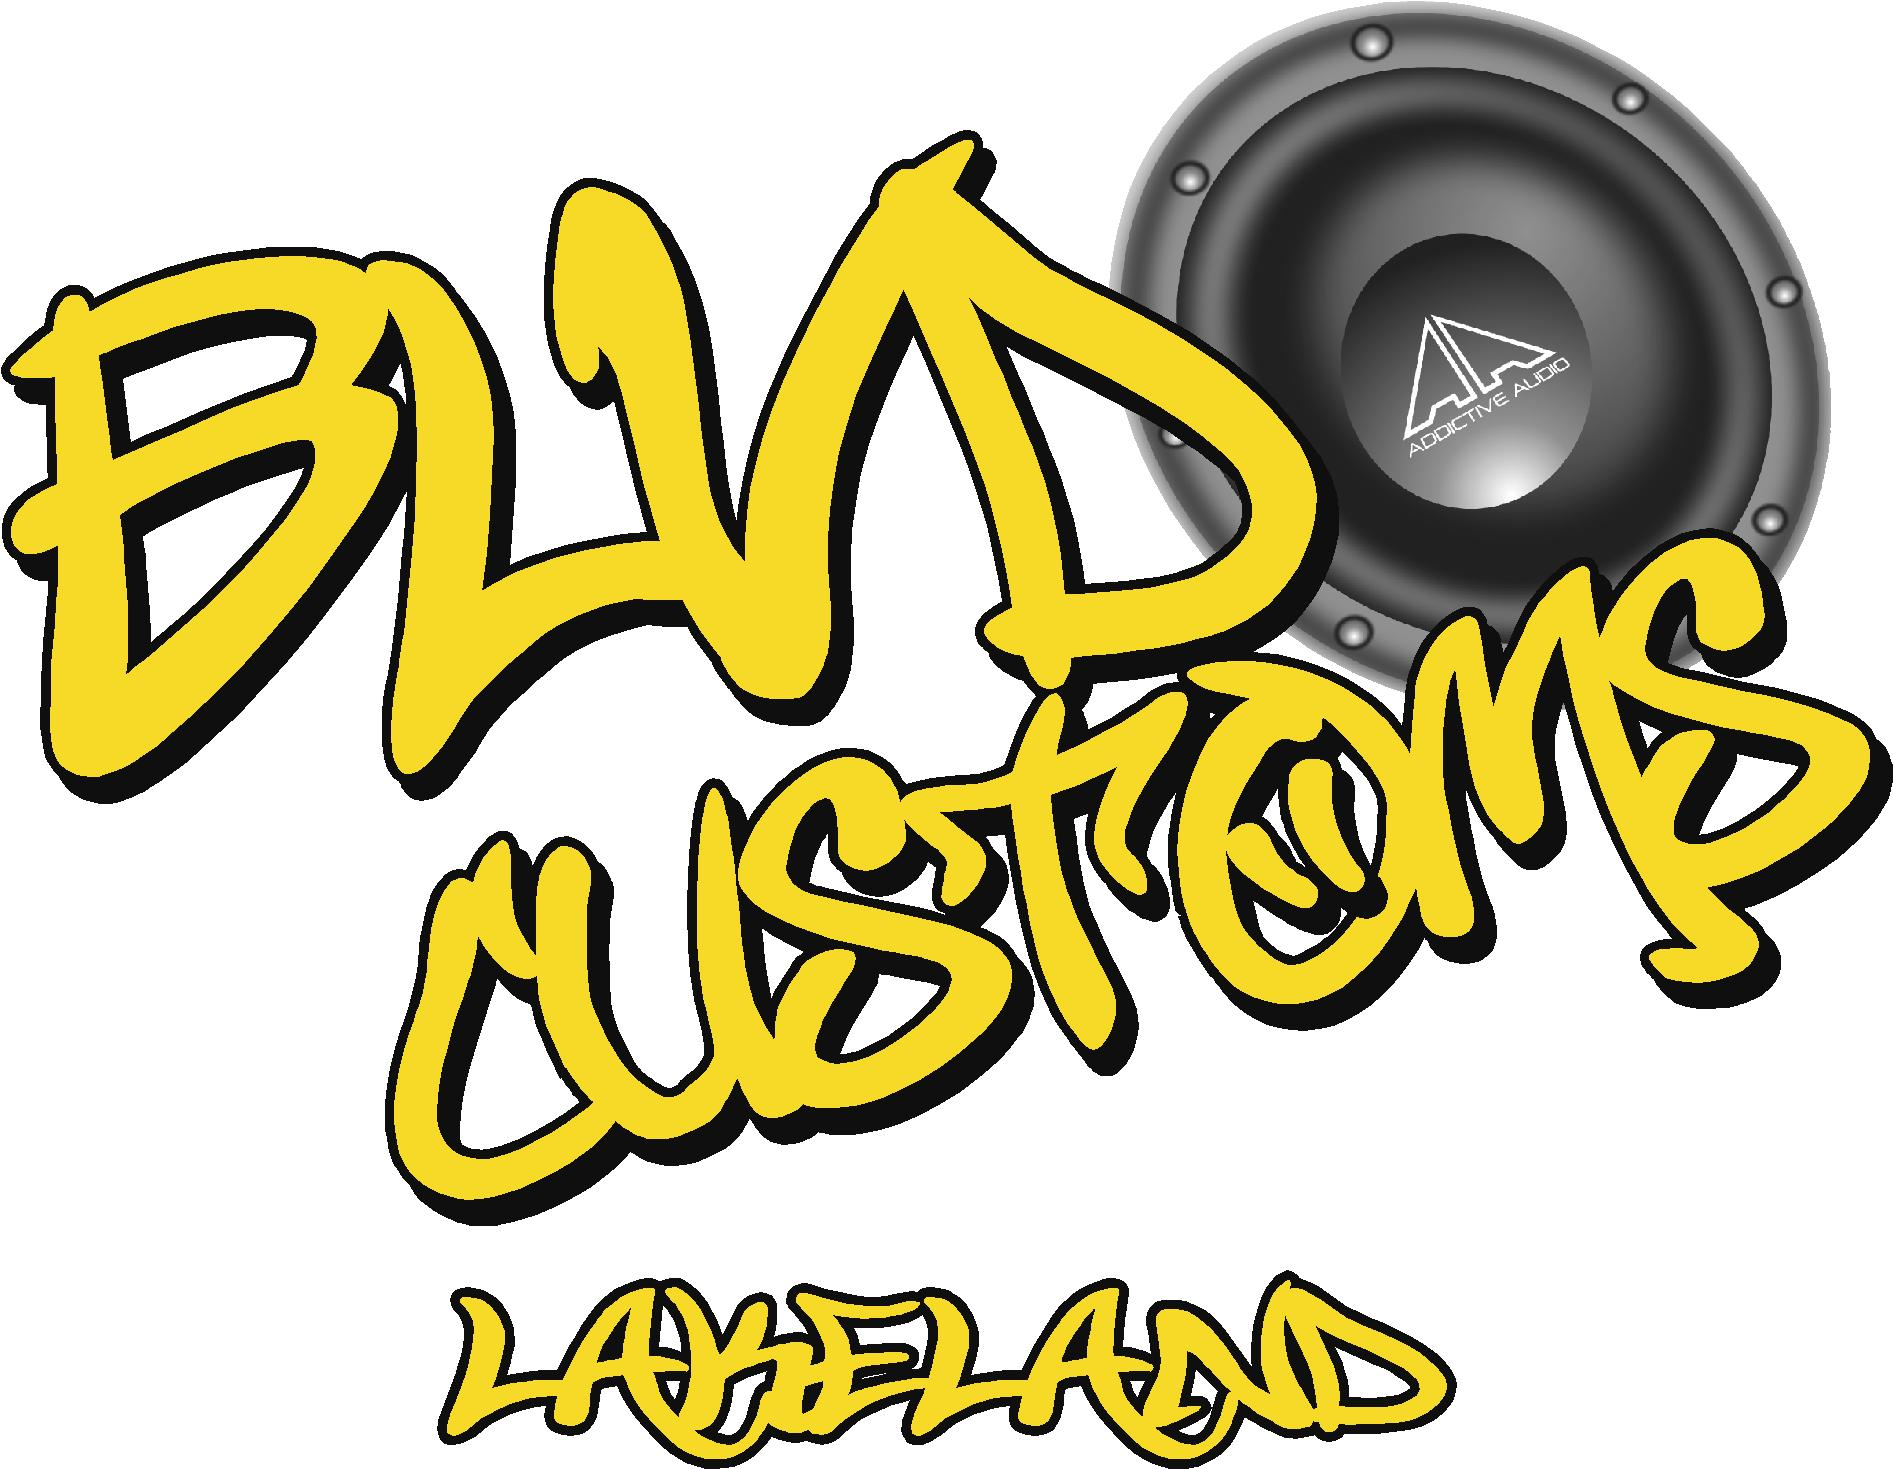 IASCA welcomes BLVD Customs of Lakeland to the IASCA Dealer Member Family